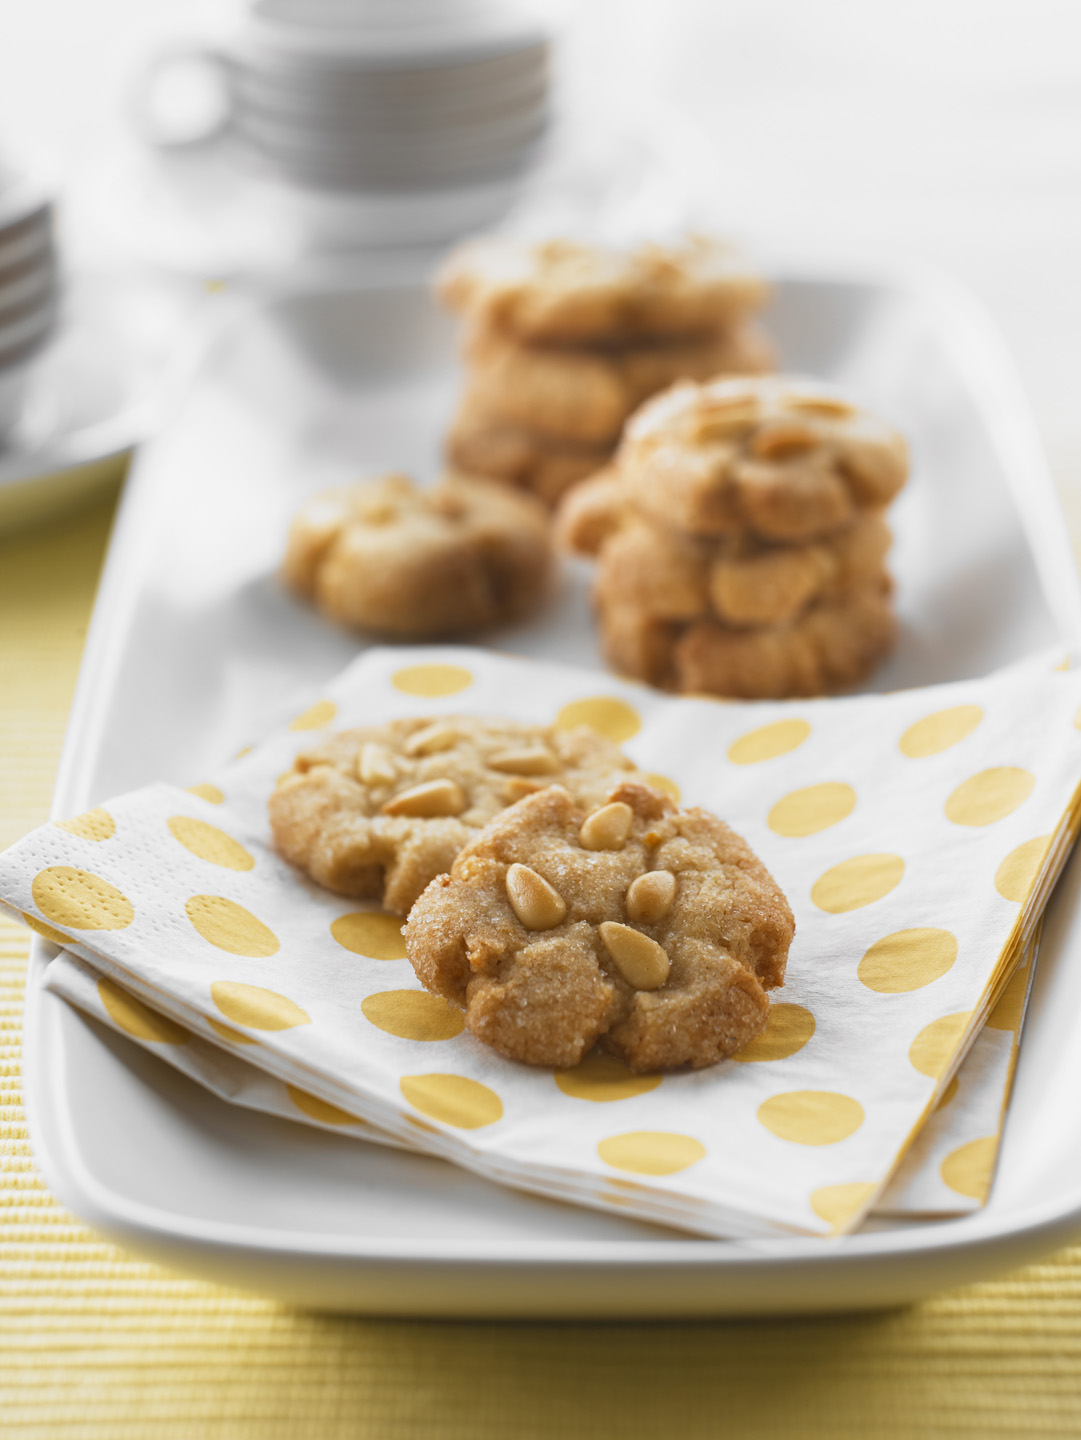 Sugared Pine Nut and Orange Biscuits